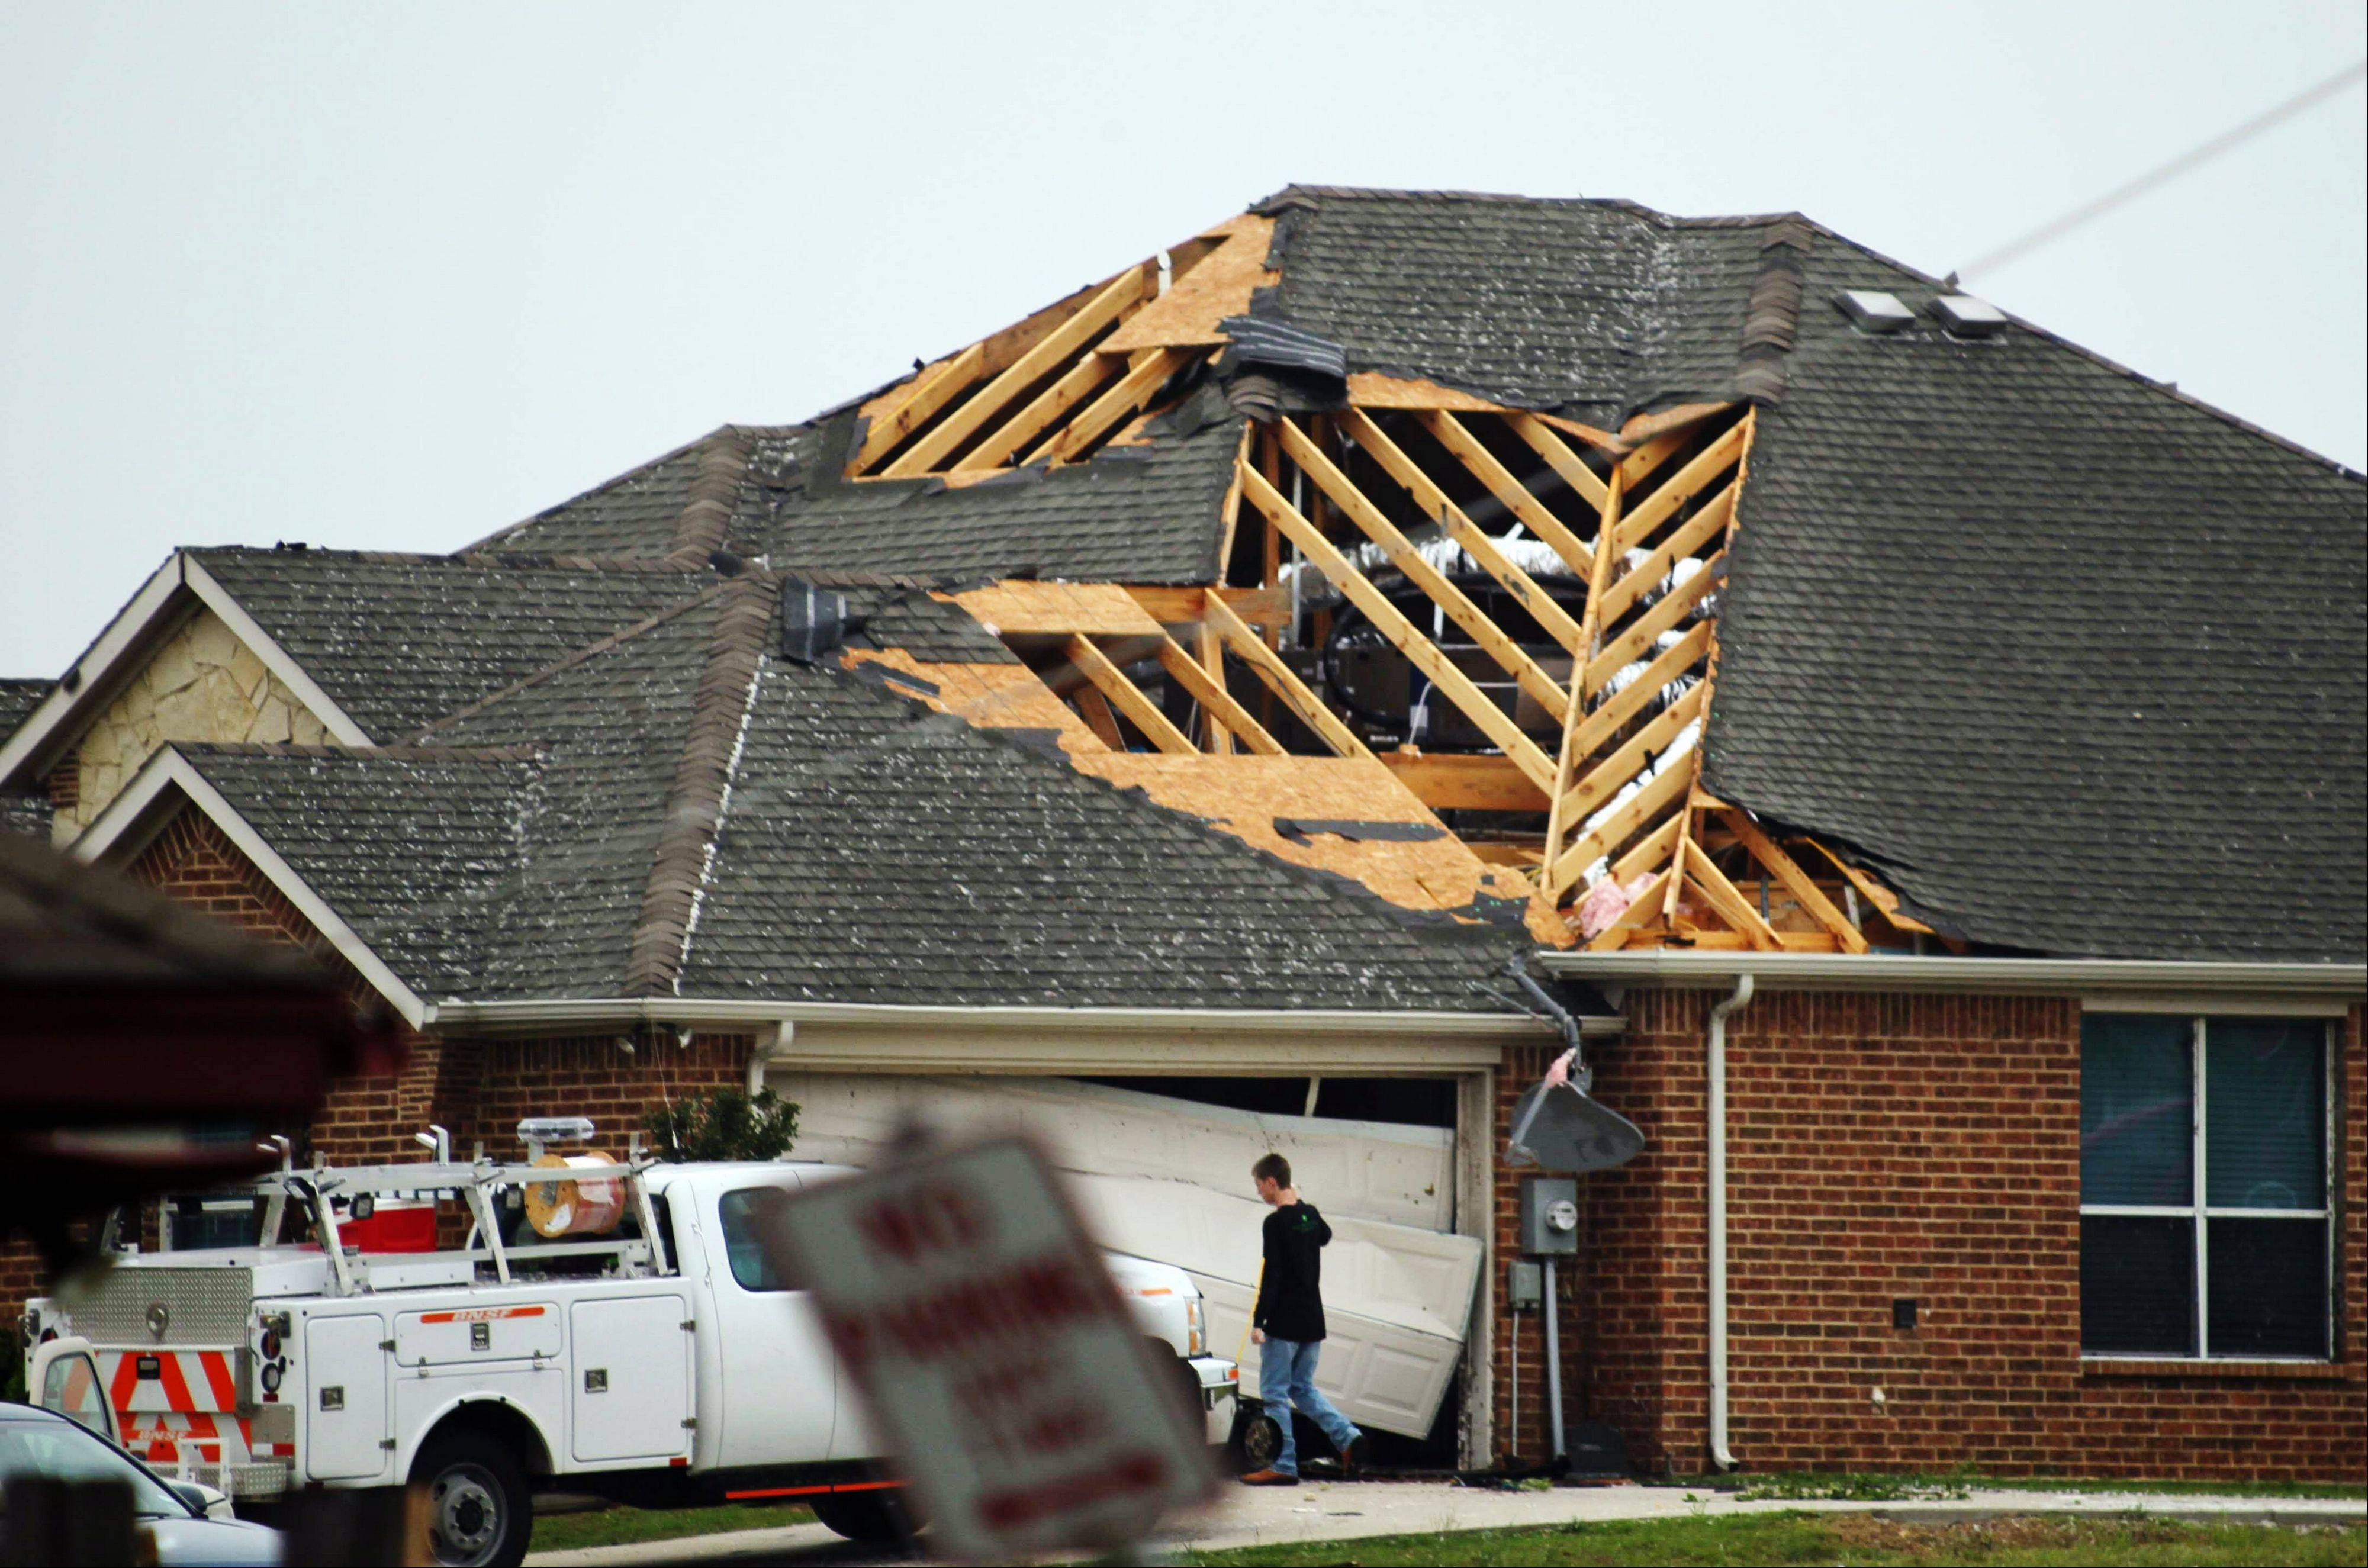 A man walks in front of a home damaged by Wednesday's tornado in Cleburne, Texas on Thursday, May 16, 2013. Ten tornadoes touched down in several small communities in Texas overnight, leaving at least six people dead, dozens injured and hundreds homeless. Emergency responders were still searching for missing people Thursday afternoon. (